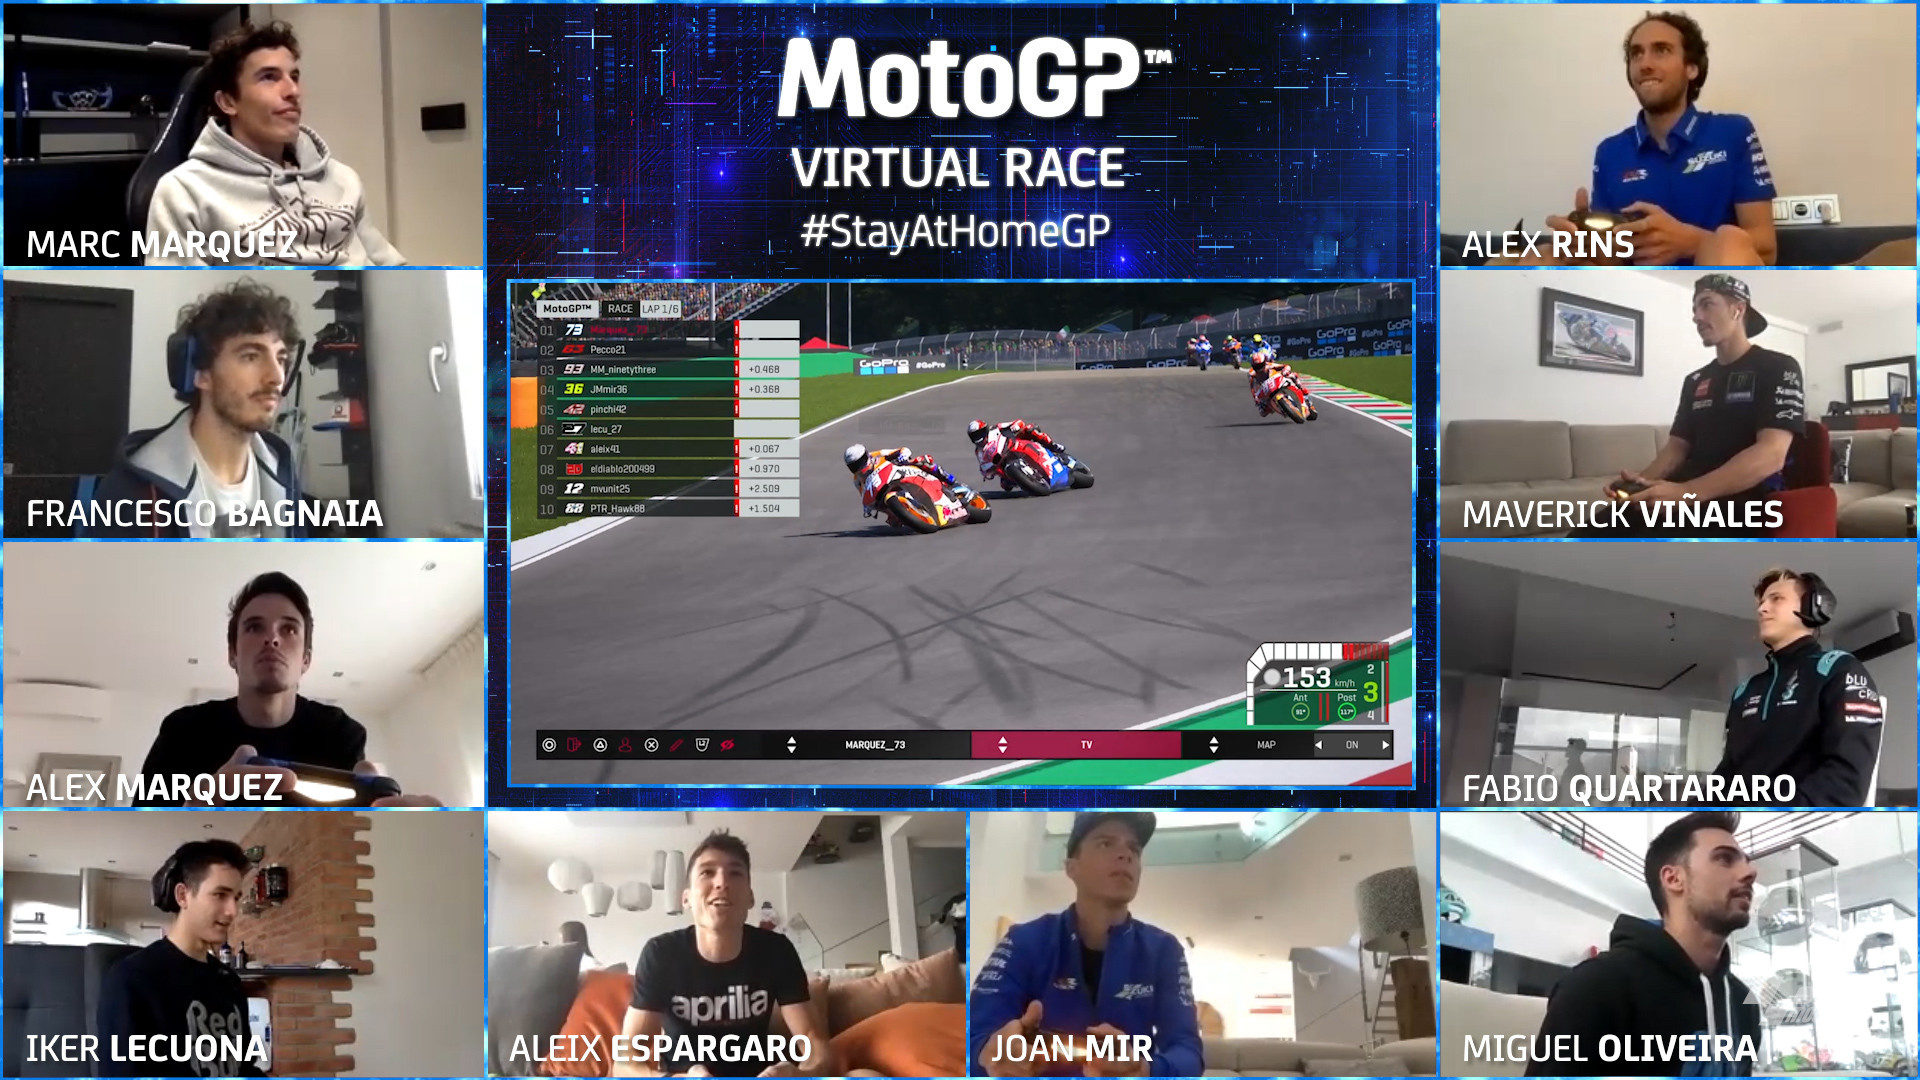 A scene from the #StayAtHomeGP virtual MotoGP race. Image courtesy of Dorna/www.motogp.com.